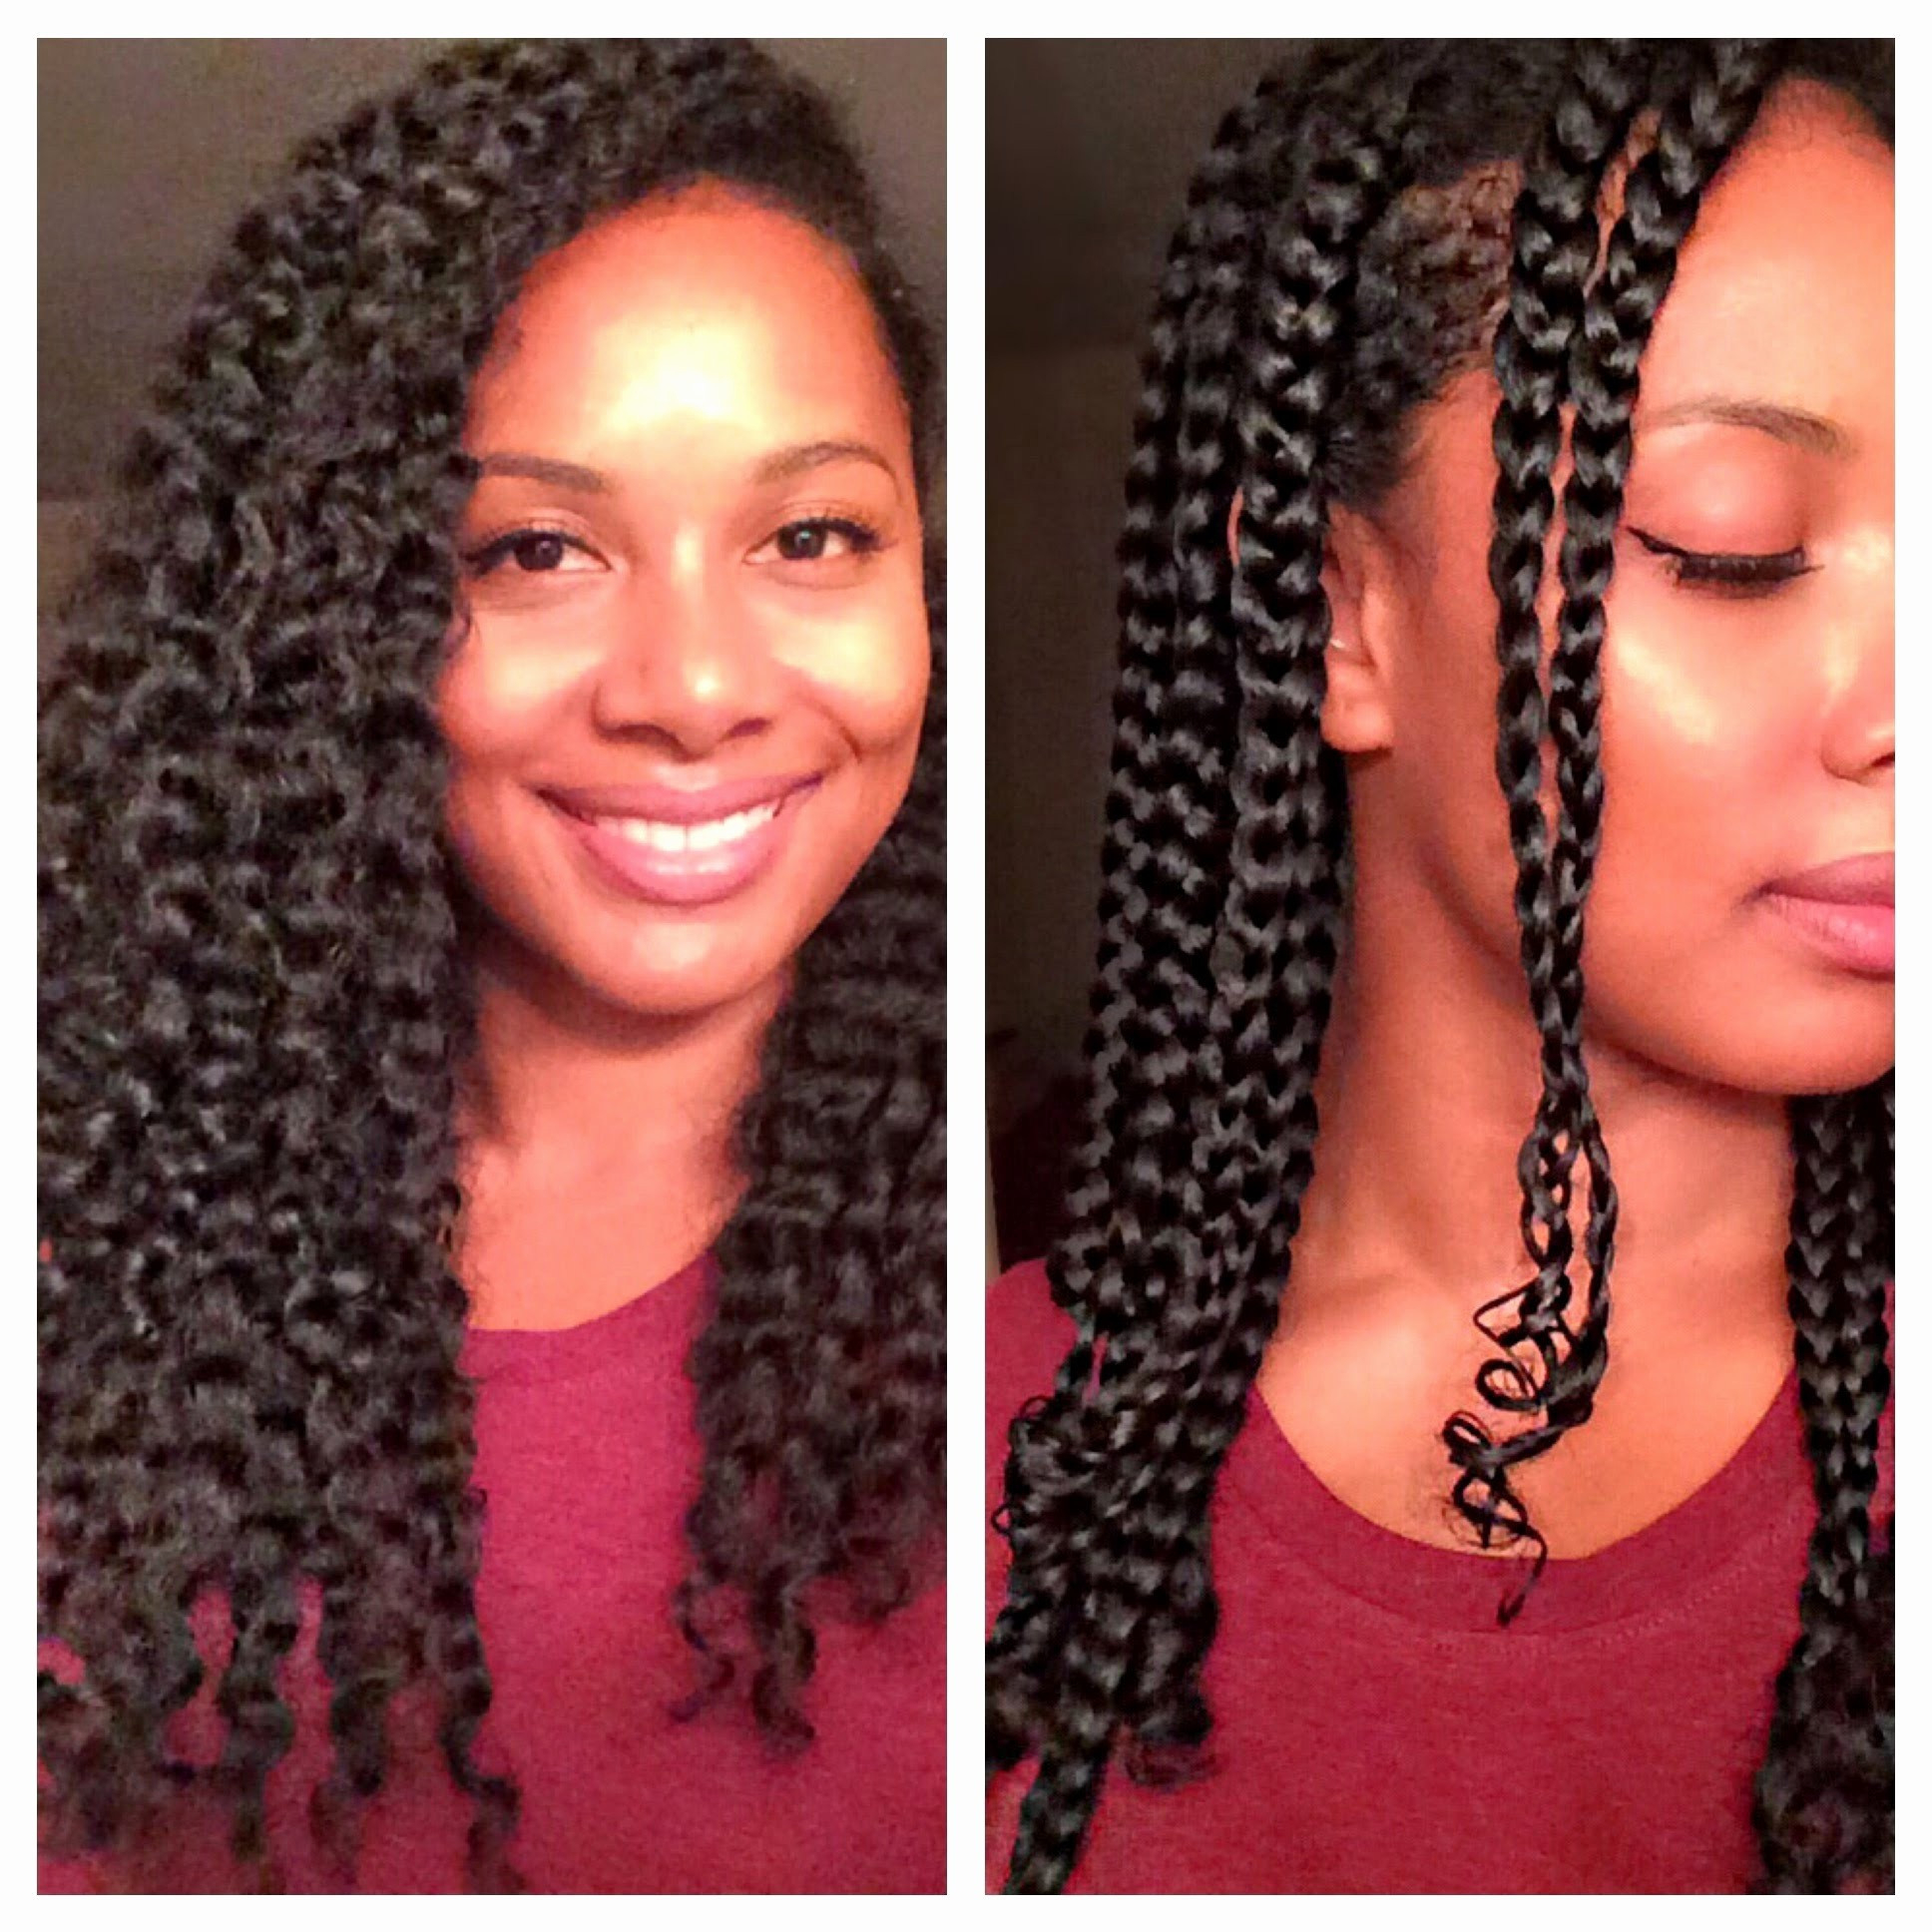 Hairstyles : Chic Braided Bob Hairstyle Gorgeous Short Jumbo Within Most Recent Short And Chic Bob Braid Hairstyles (View 19 of 20)